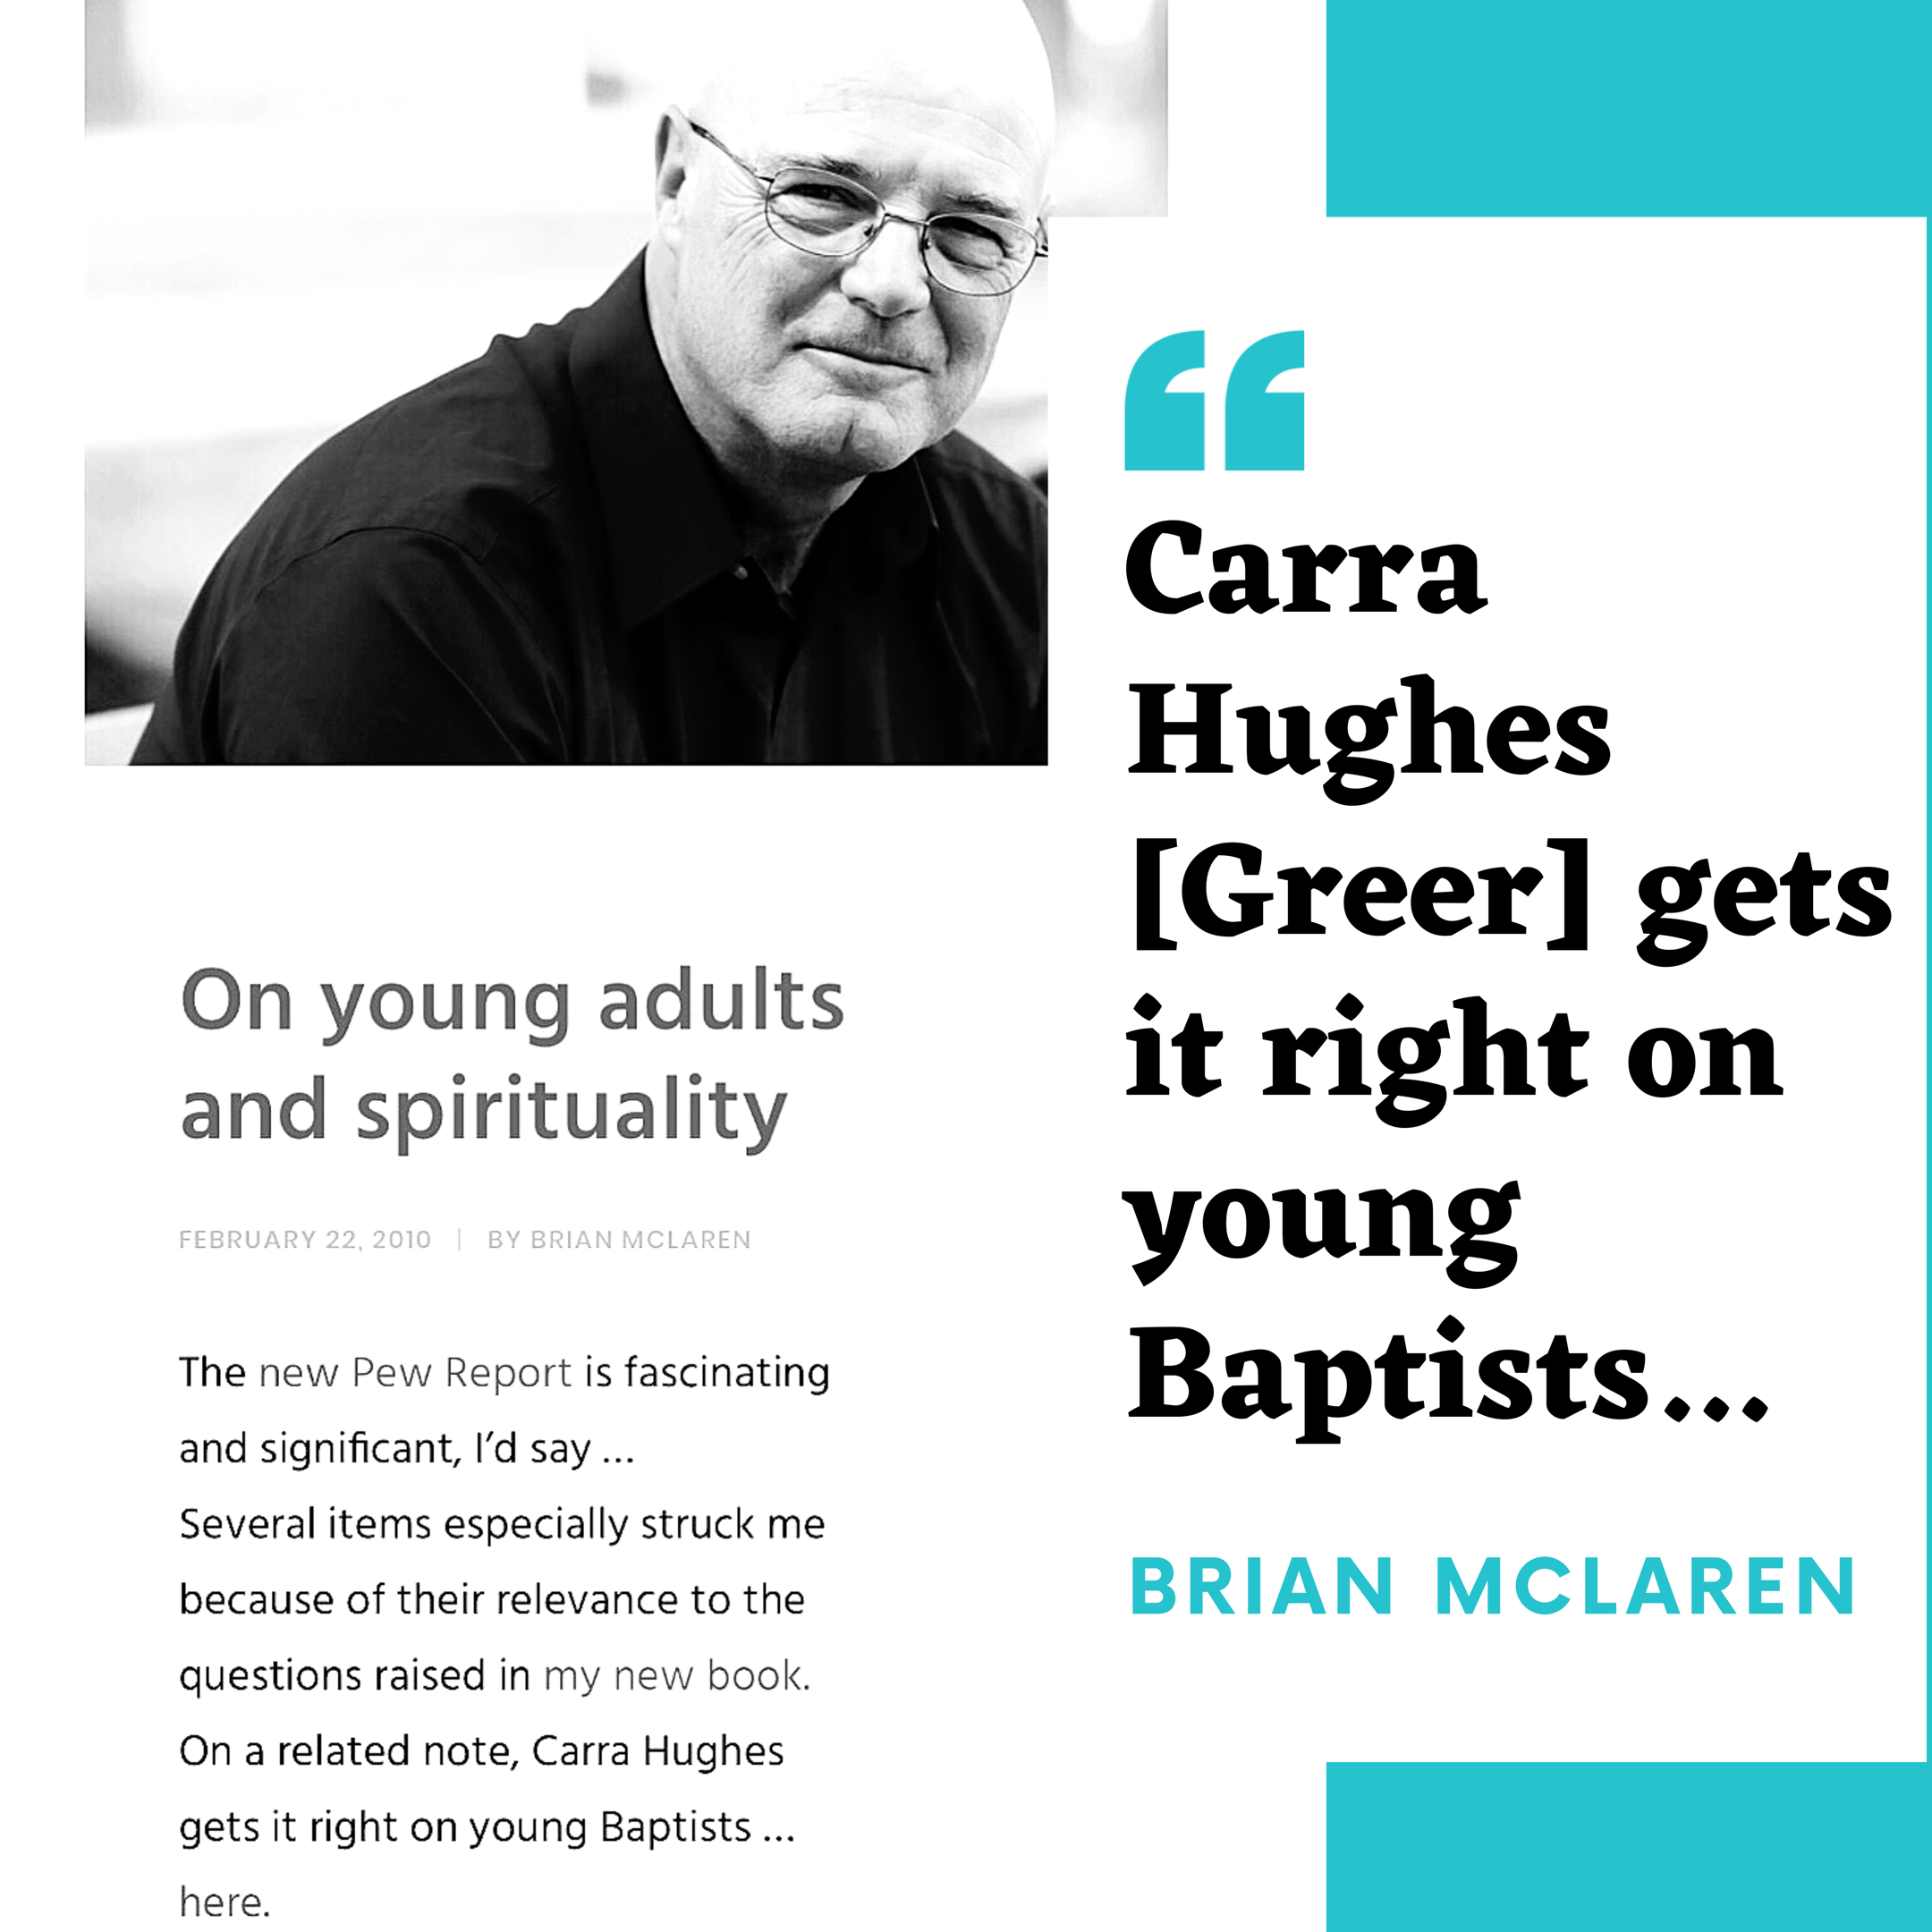 Carra Hughes Greer gets it right on young Baptists....png